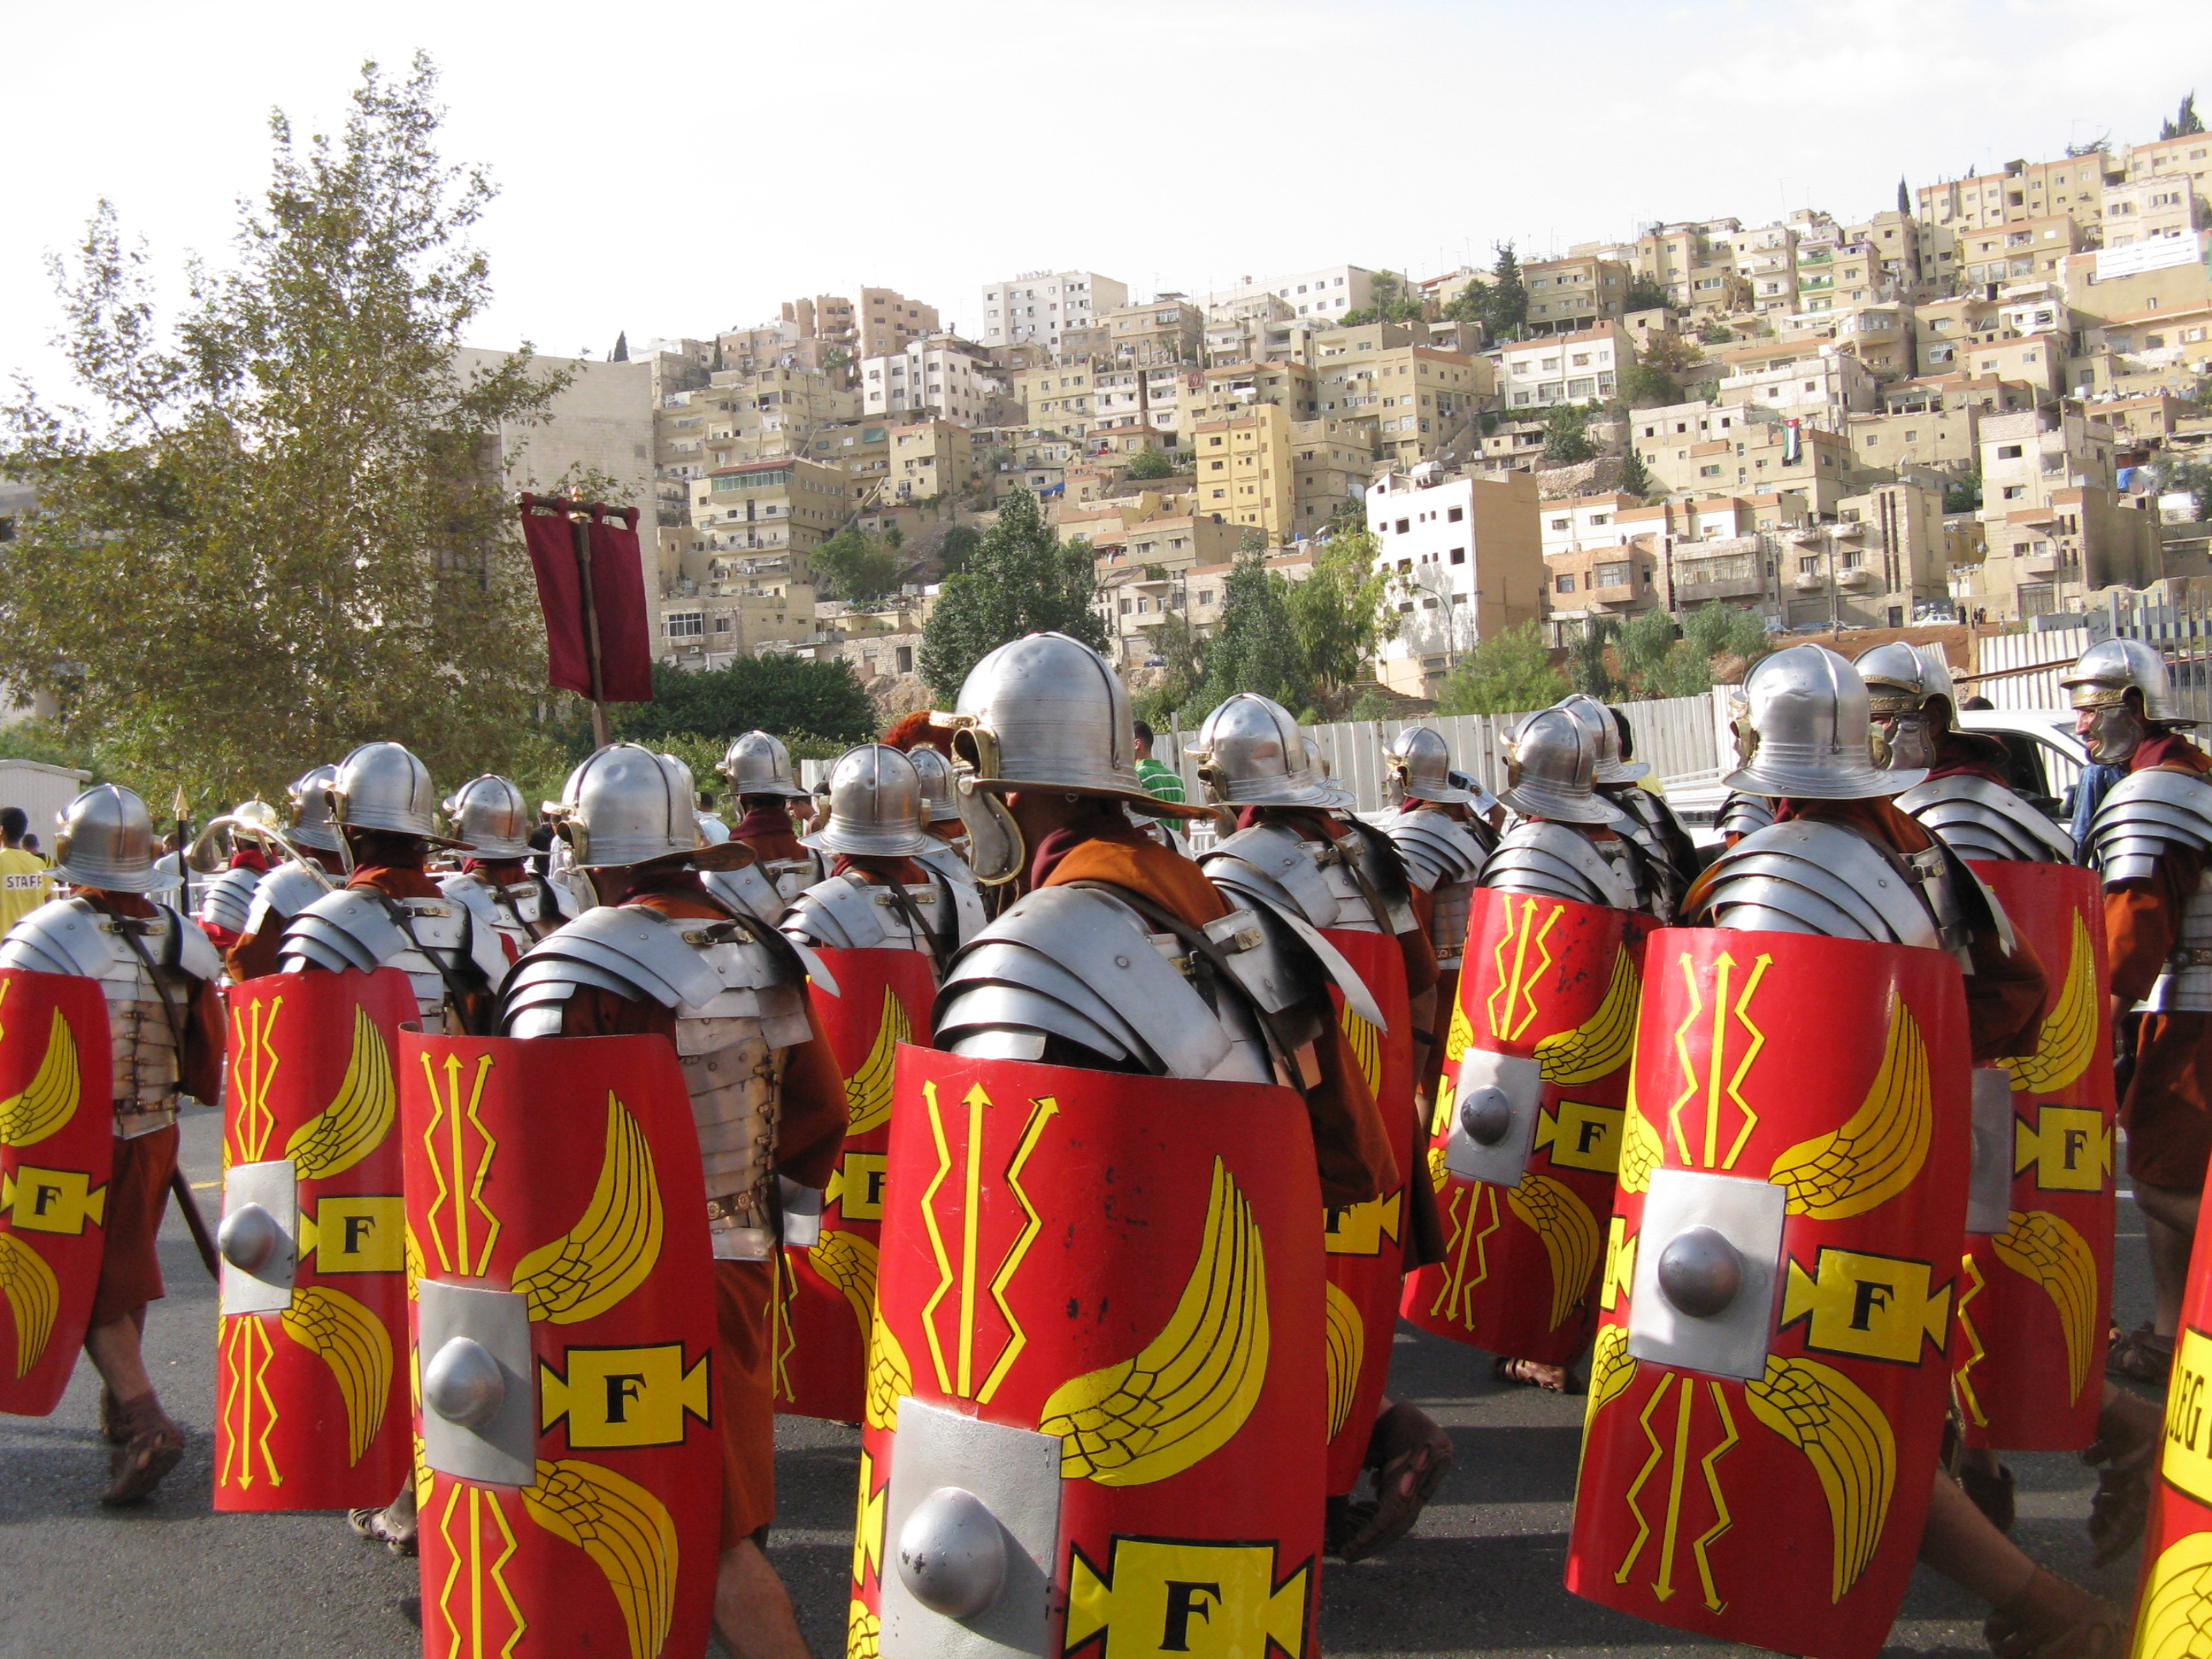 Roman soldiers in Amman